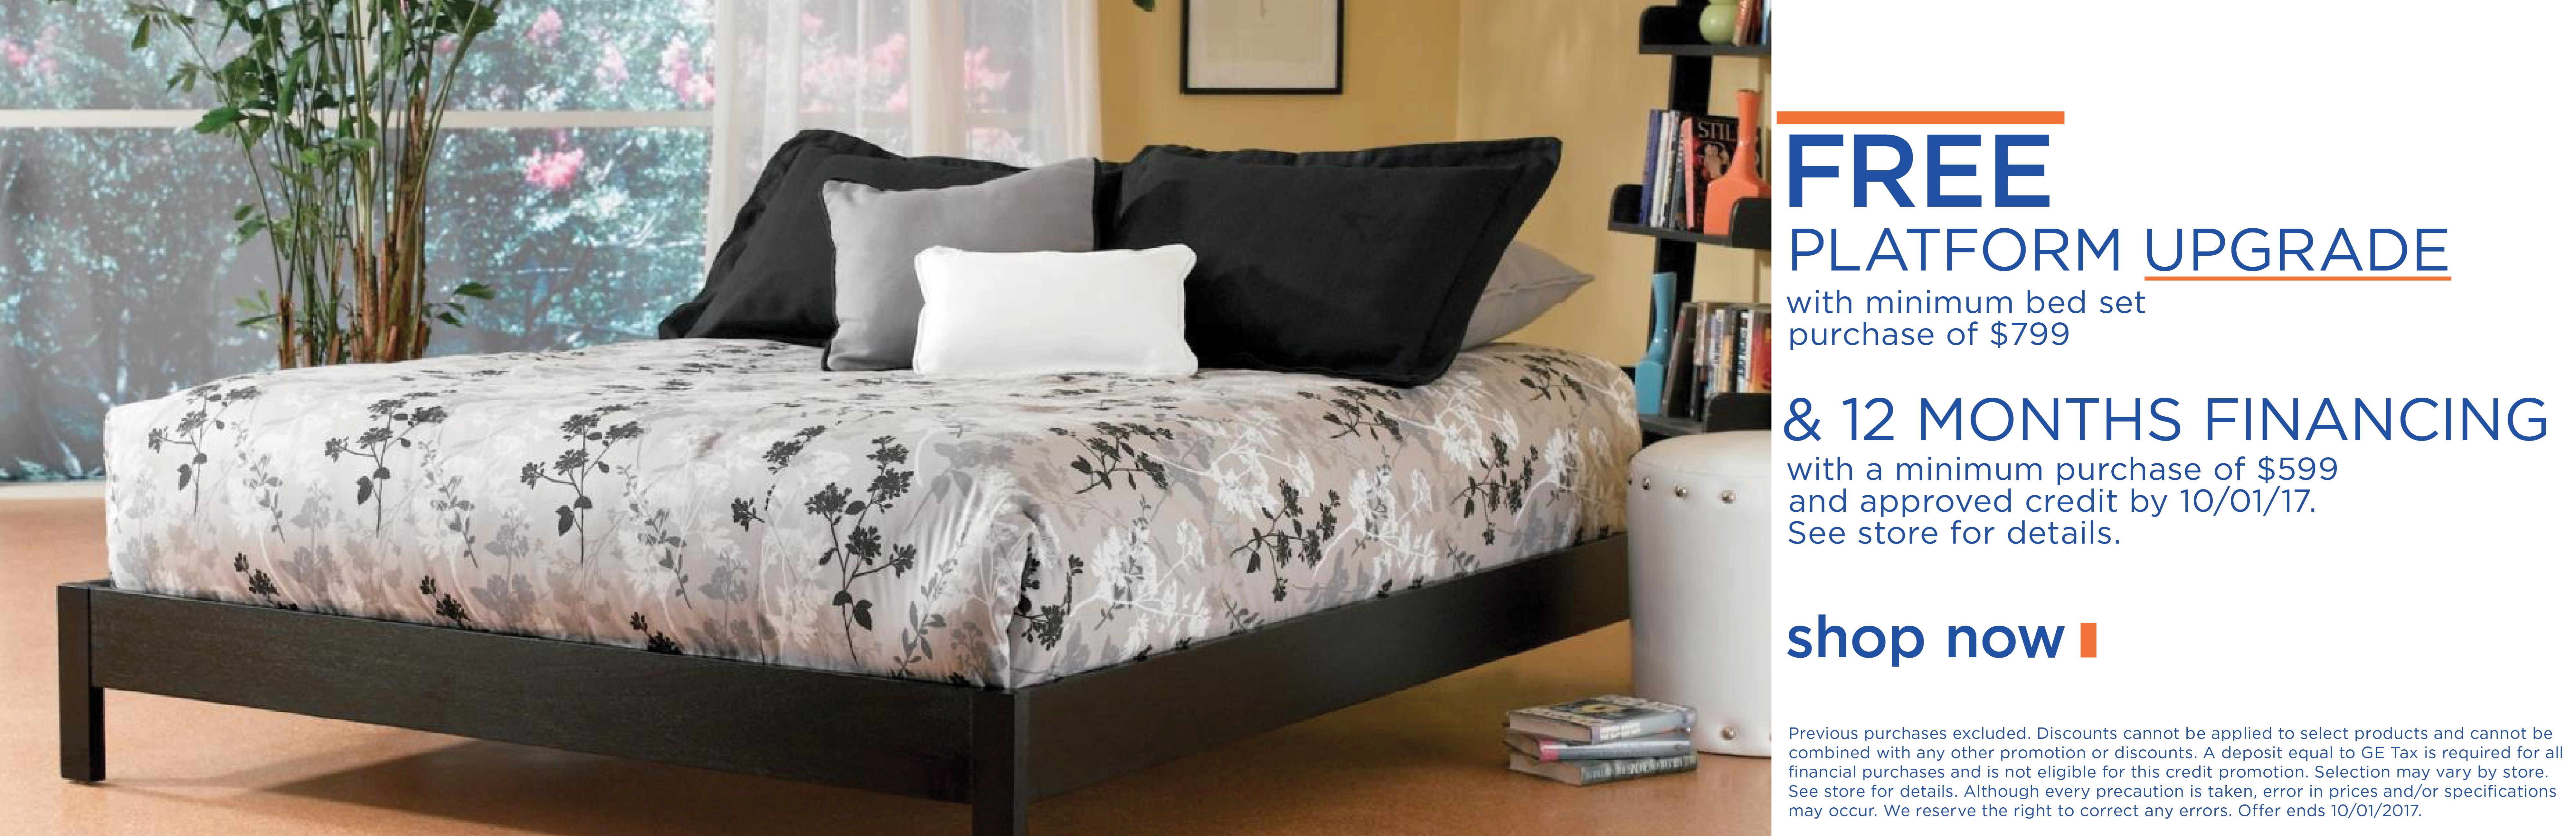 Free platform upgrade with minimum bed set purchase of $799; special financing available. See store for details.